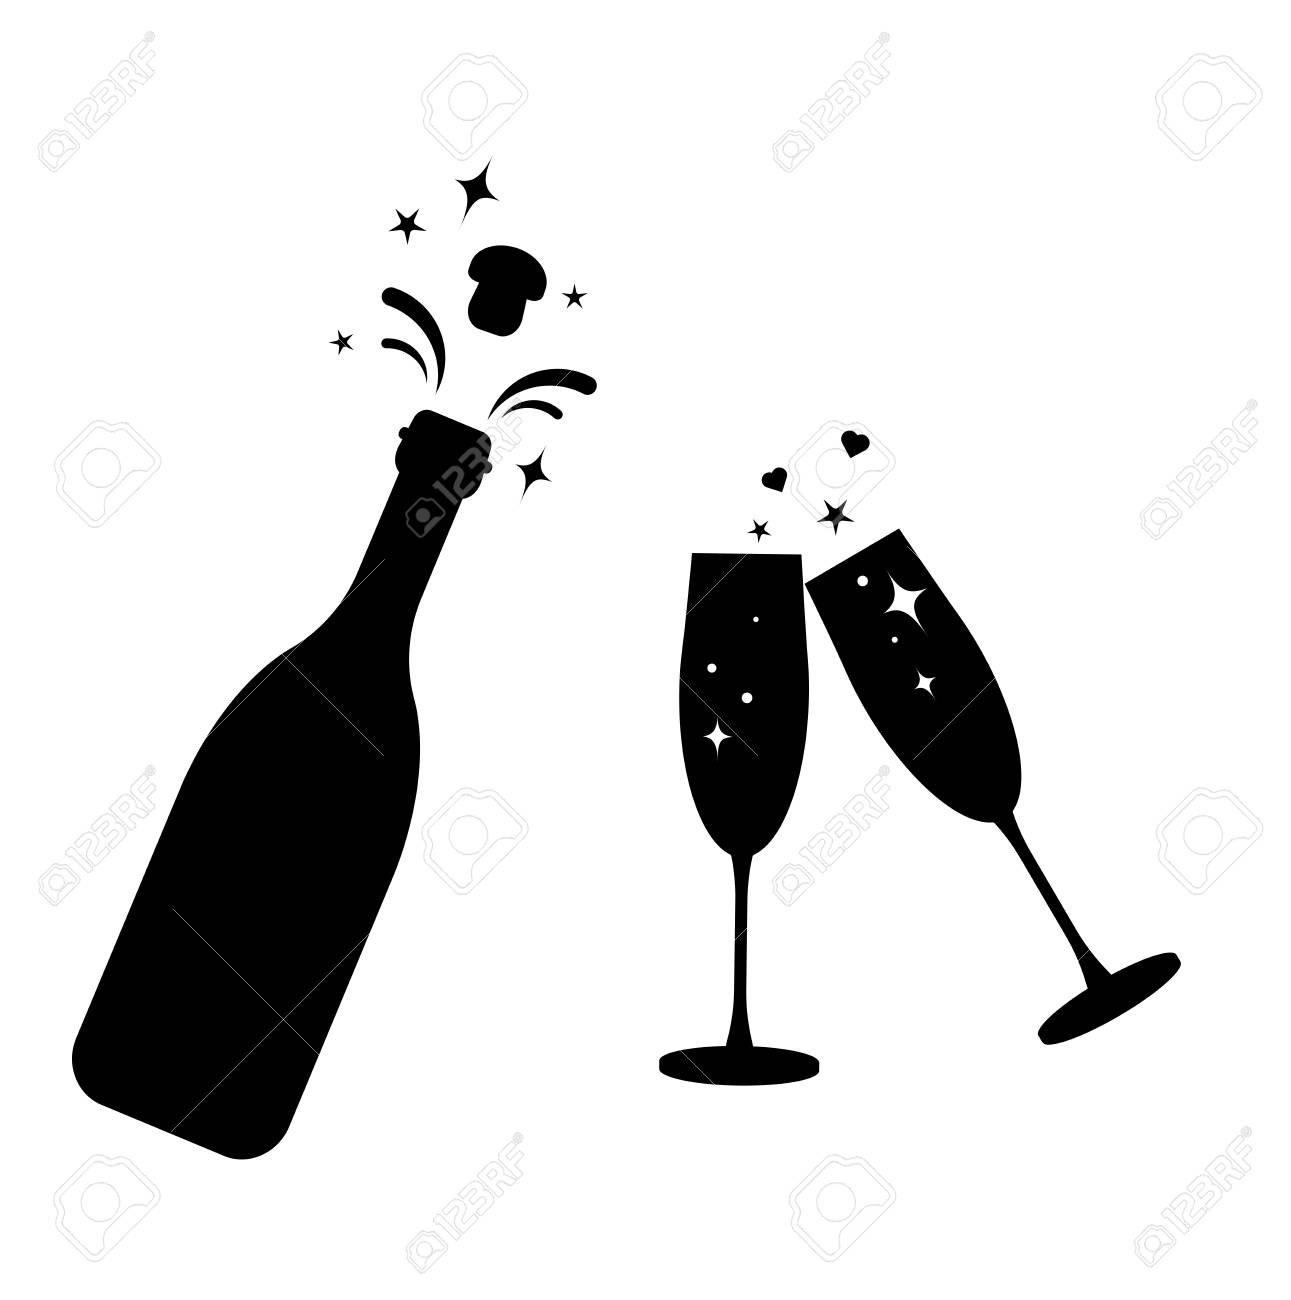 ff10c772dde Champagne bottle vector glass icon. Bottle and two glasses black silhouette  icons. Stock Vector